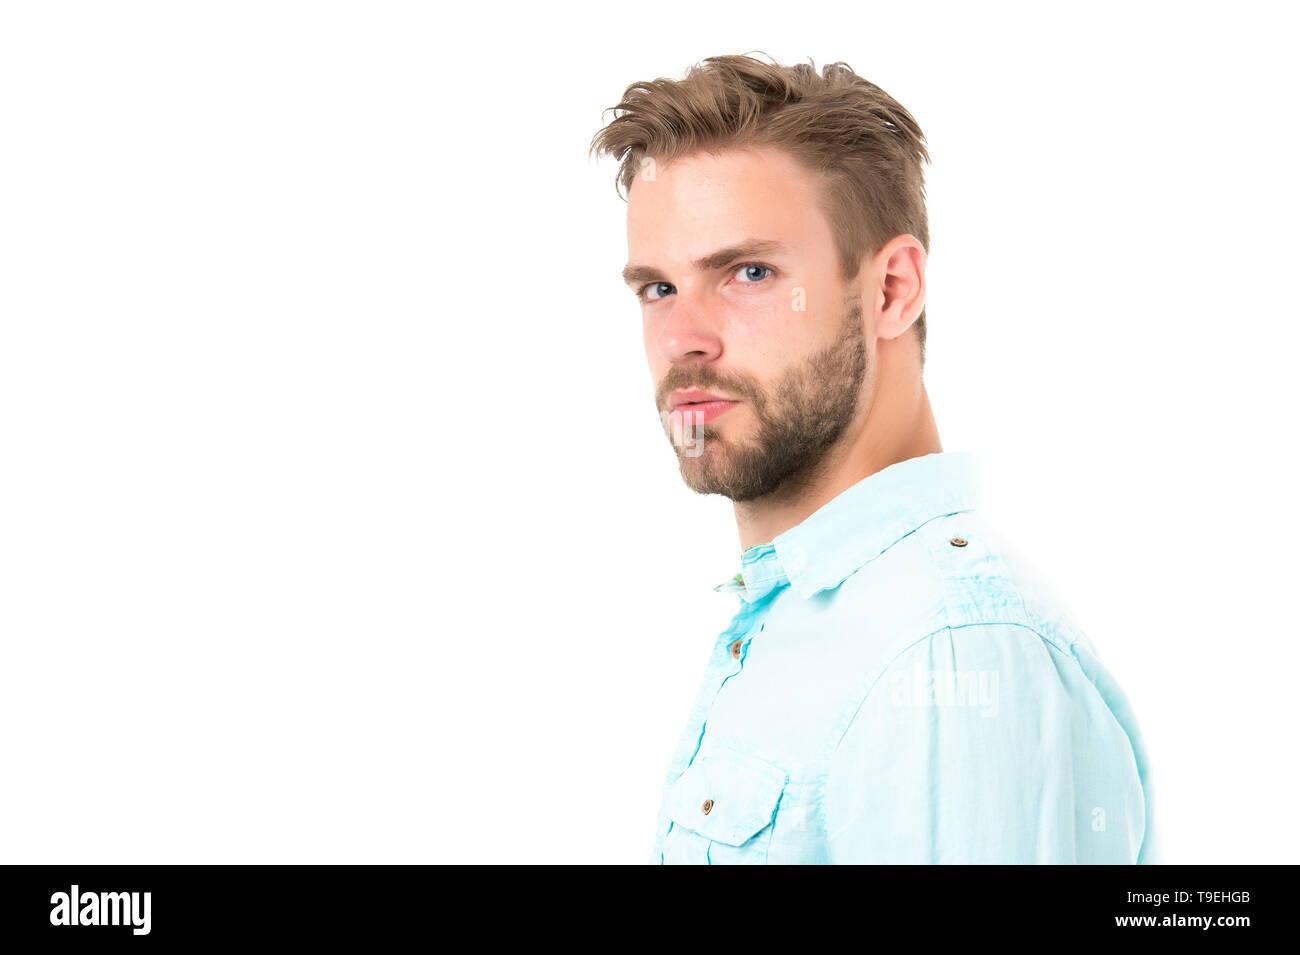 Metrosexual concept. Man bristle serious strict face looks back, isolated white. Man beard unshaven guy looks handsome and cool. Handsome in style. Gu - Stock Image